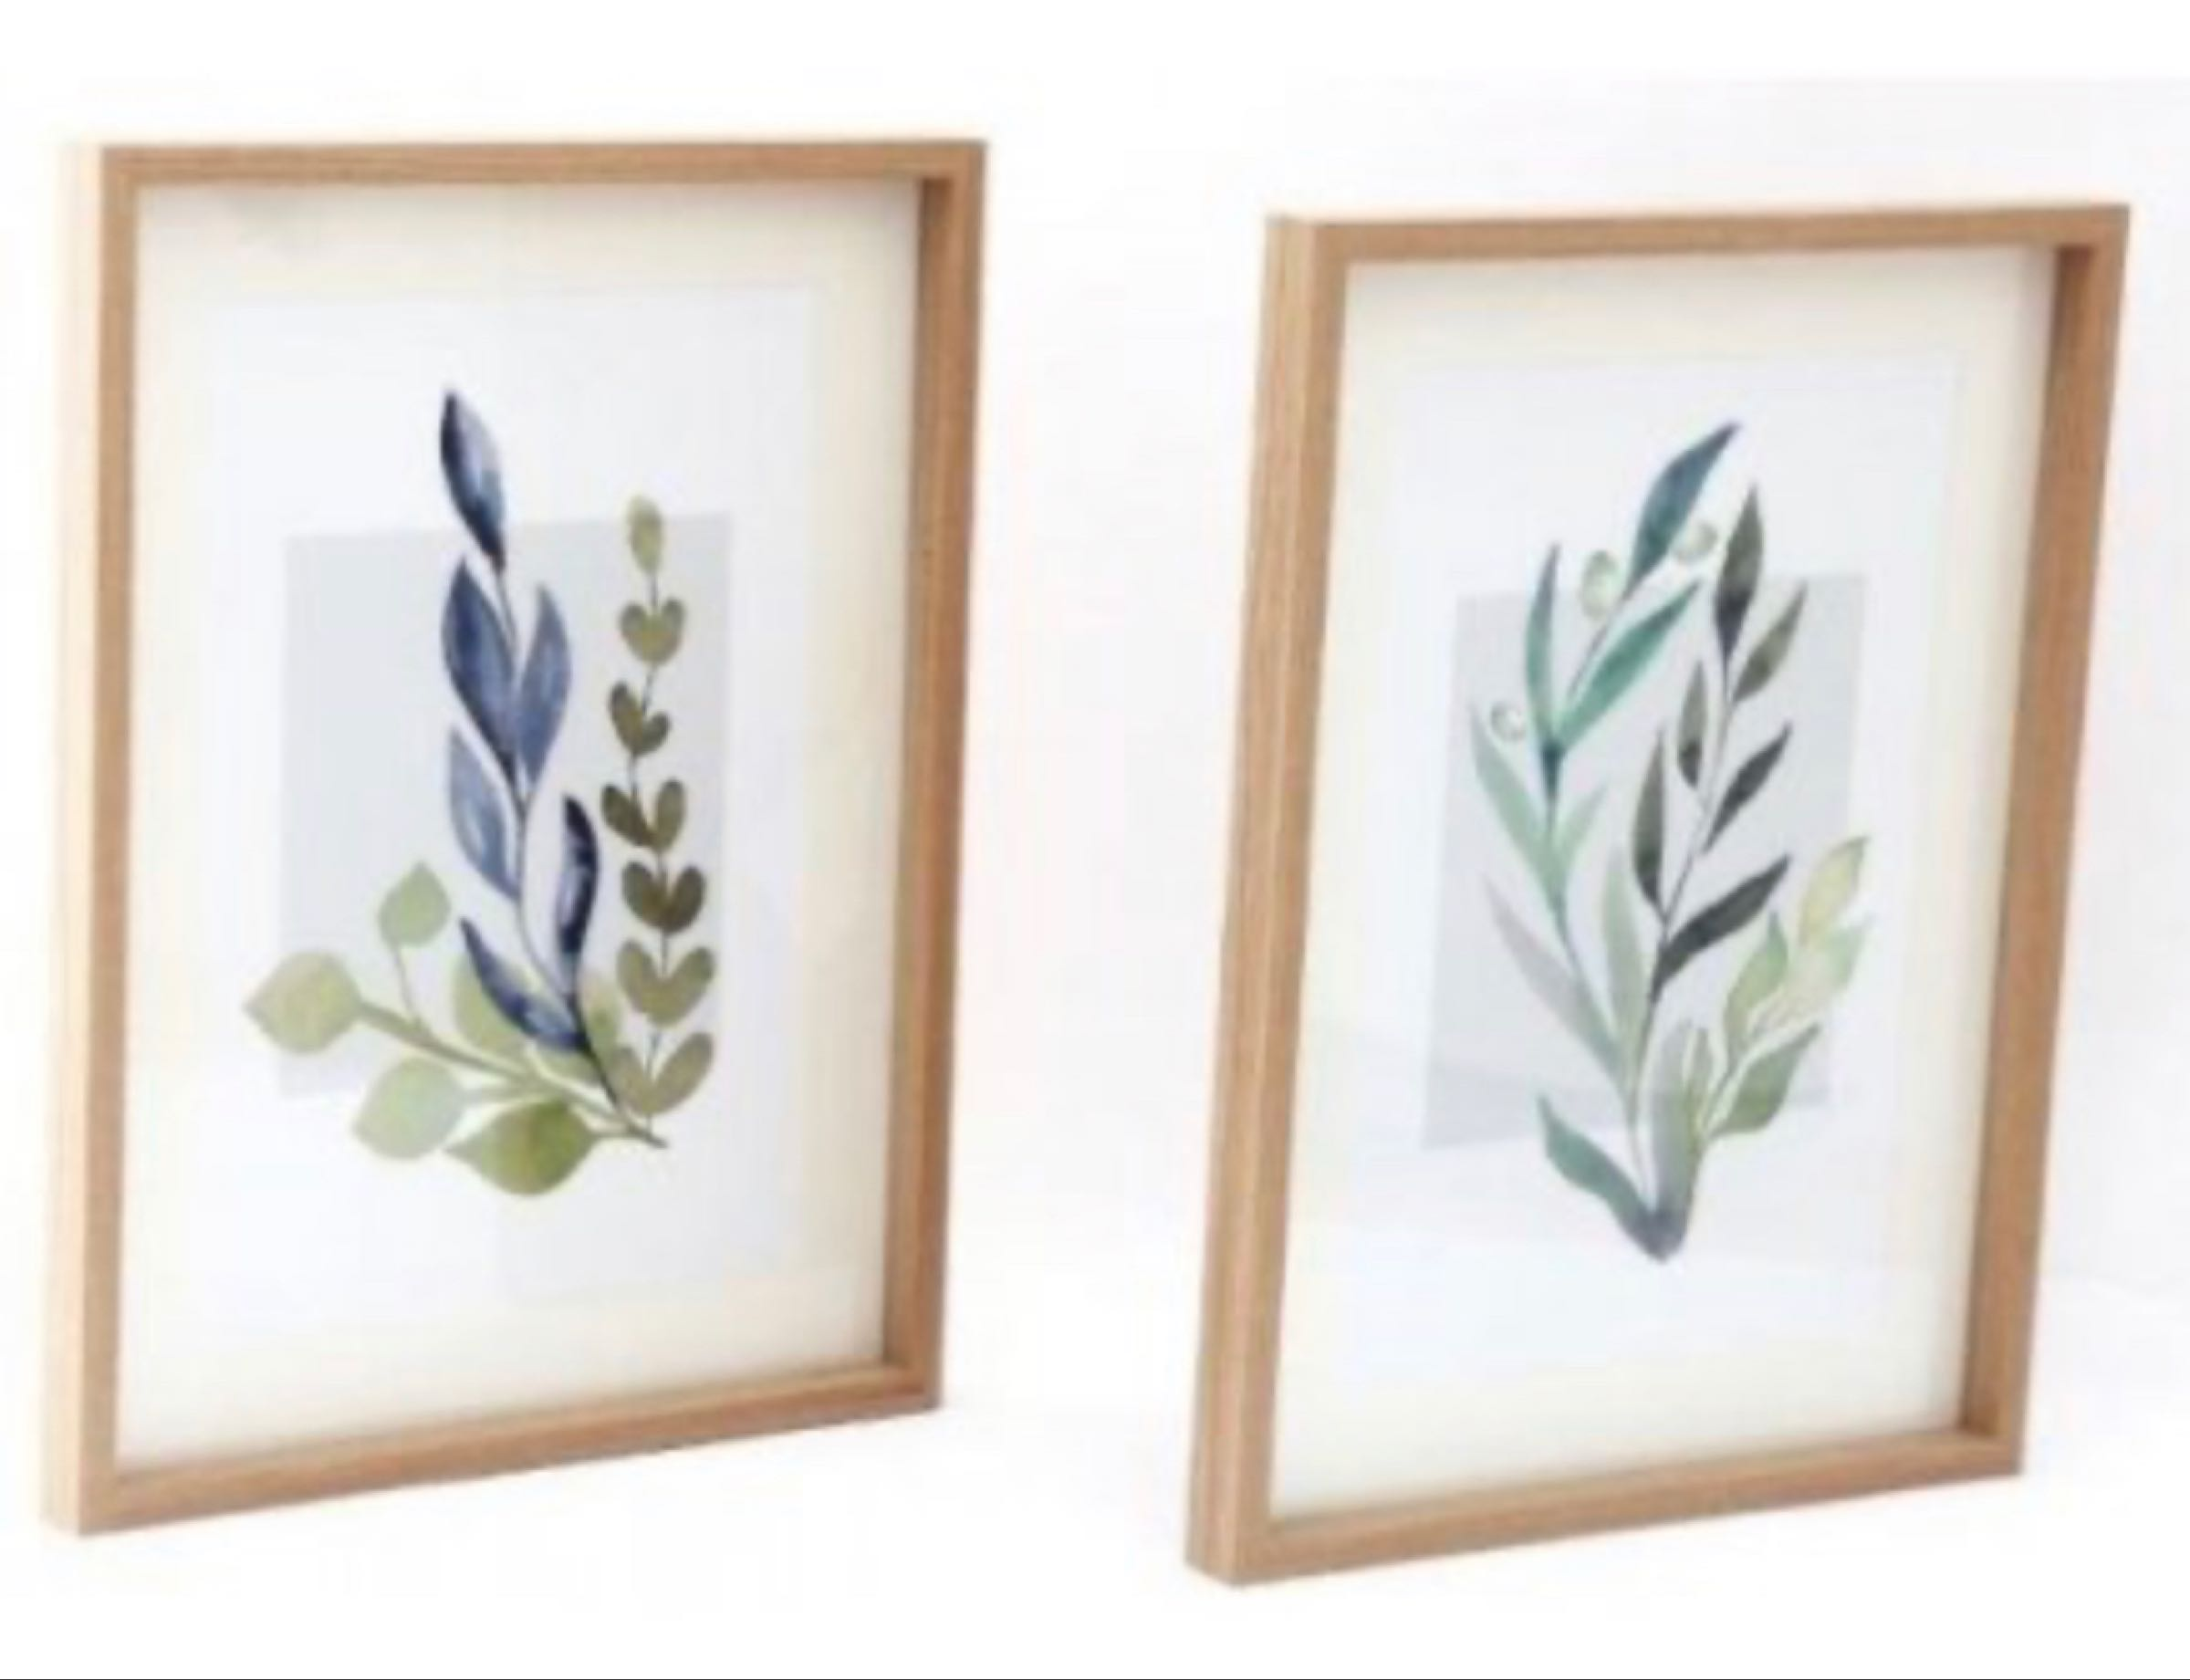 Framed Olive Grove Prints 40cm (2 designs available, price is per picture)